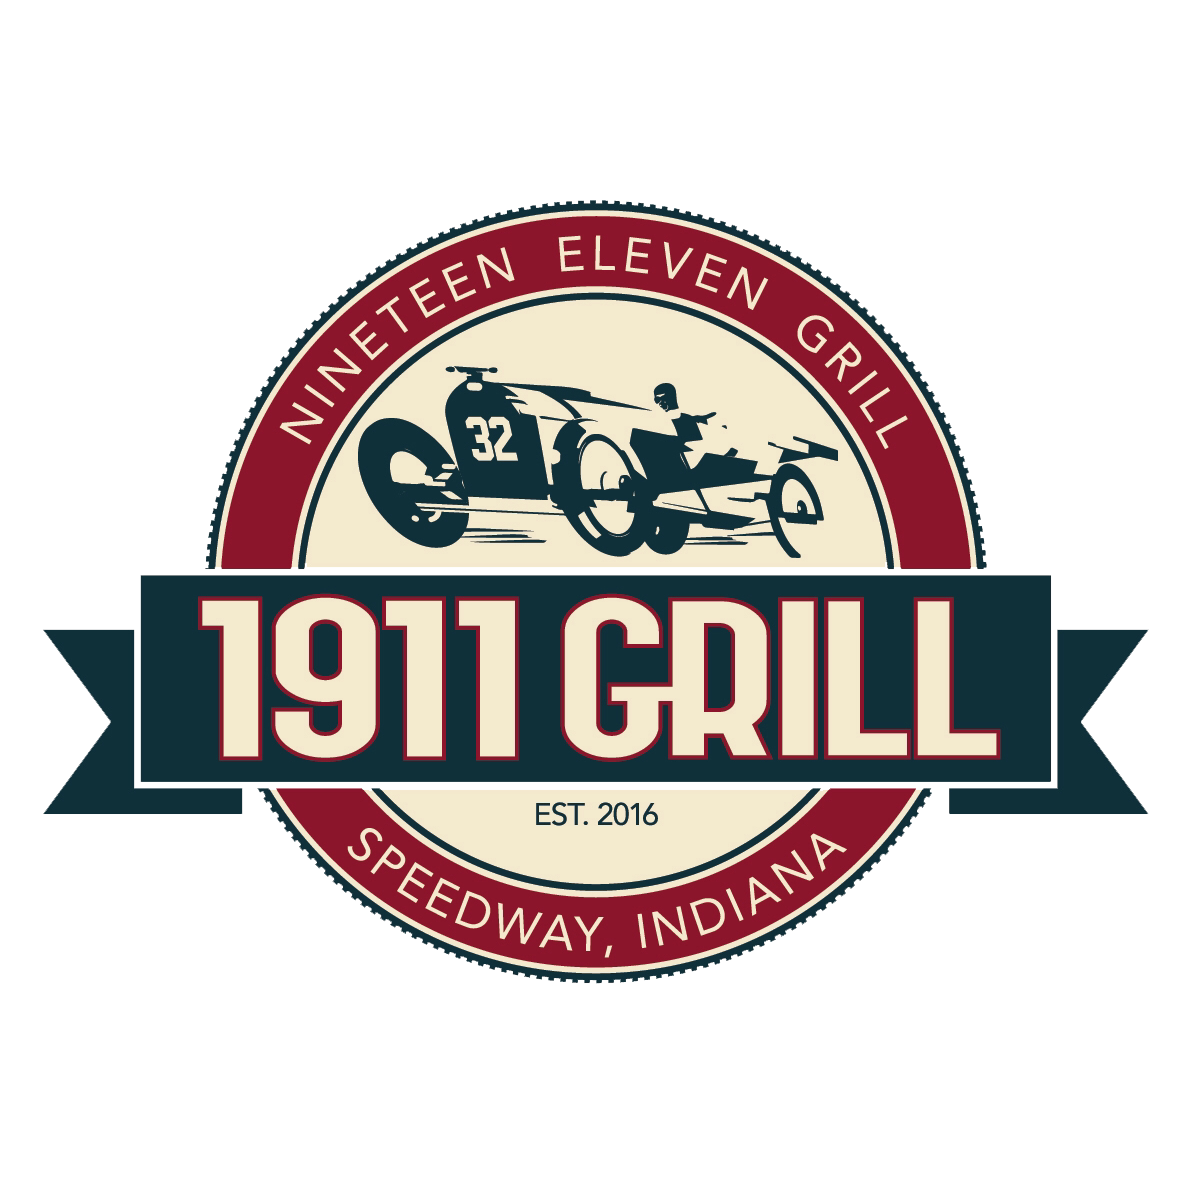 1911 Grill